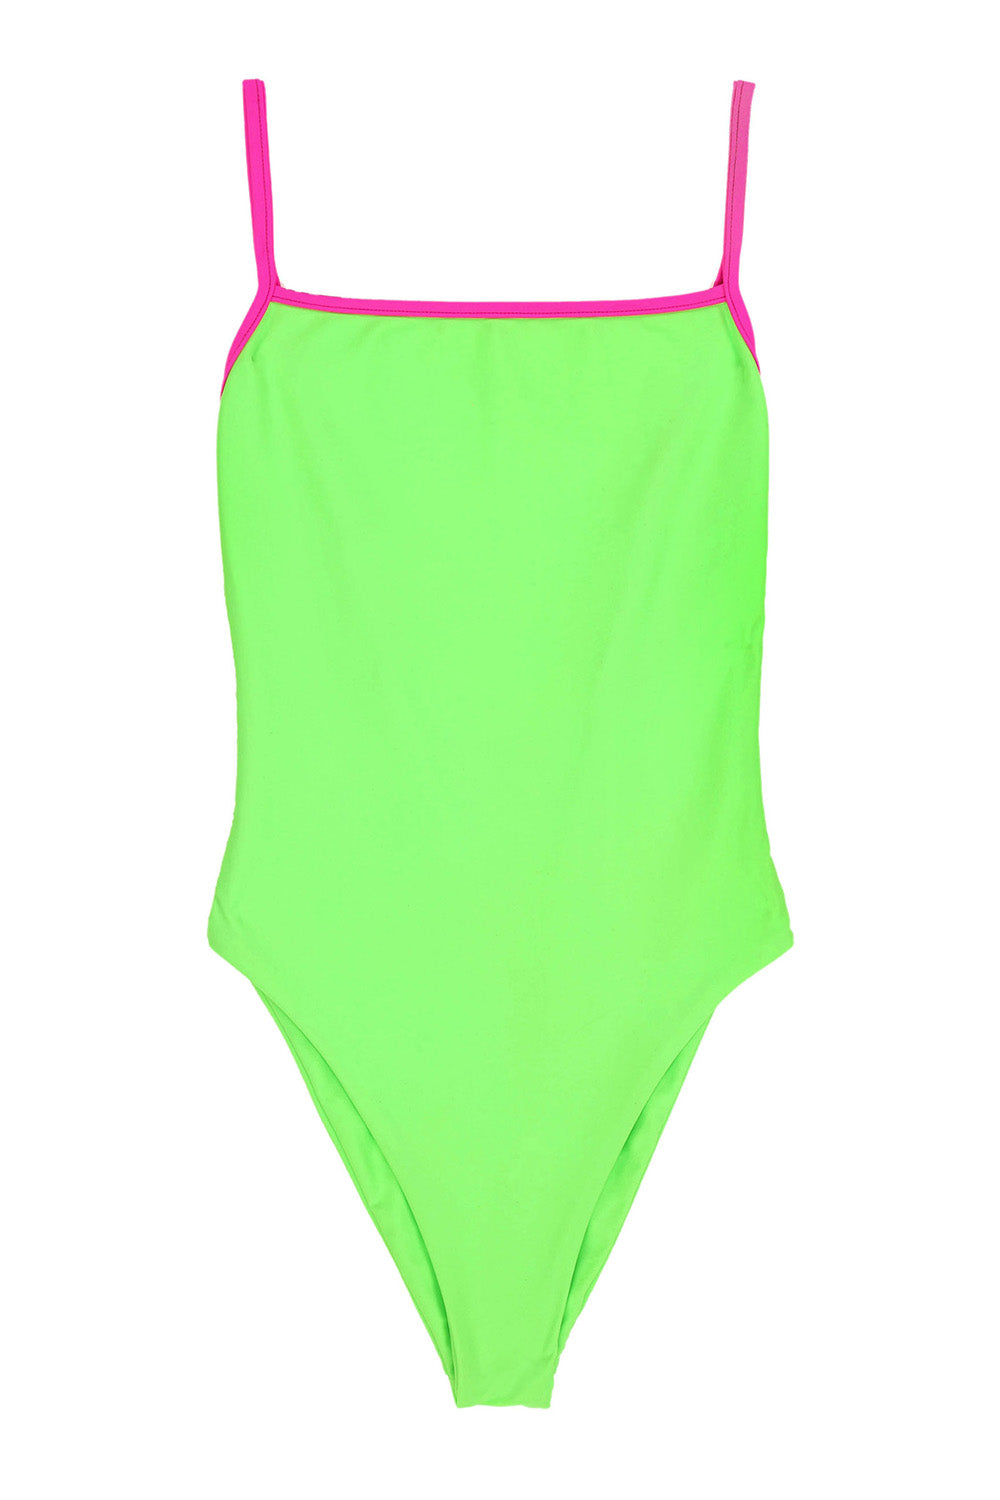 Skin by SAME One Piece in Neon Green/Neon Pink- Final Sale